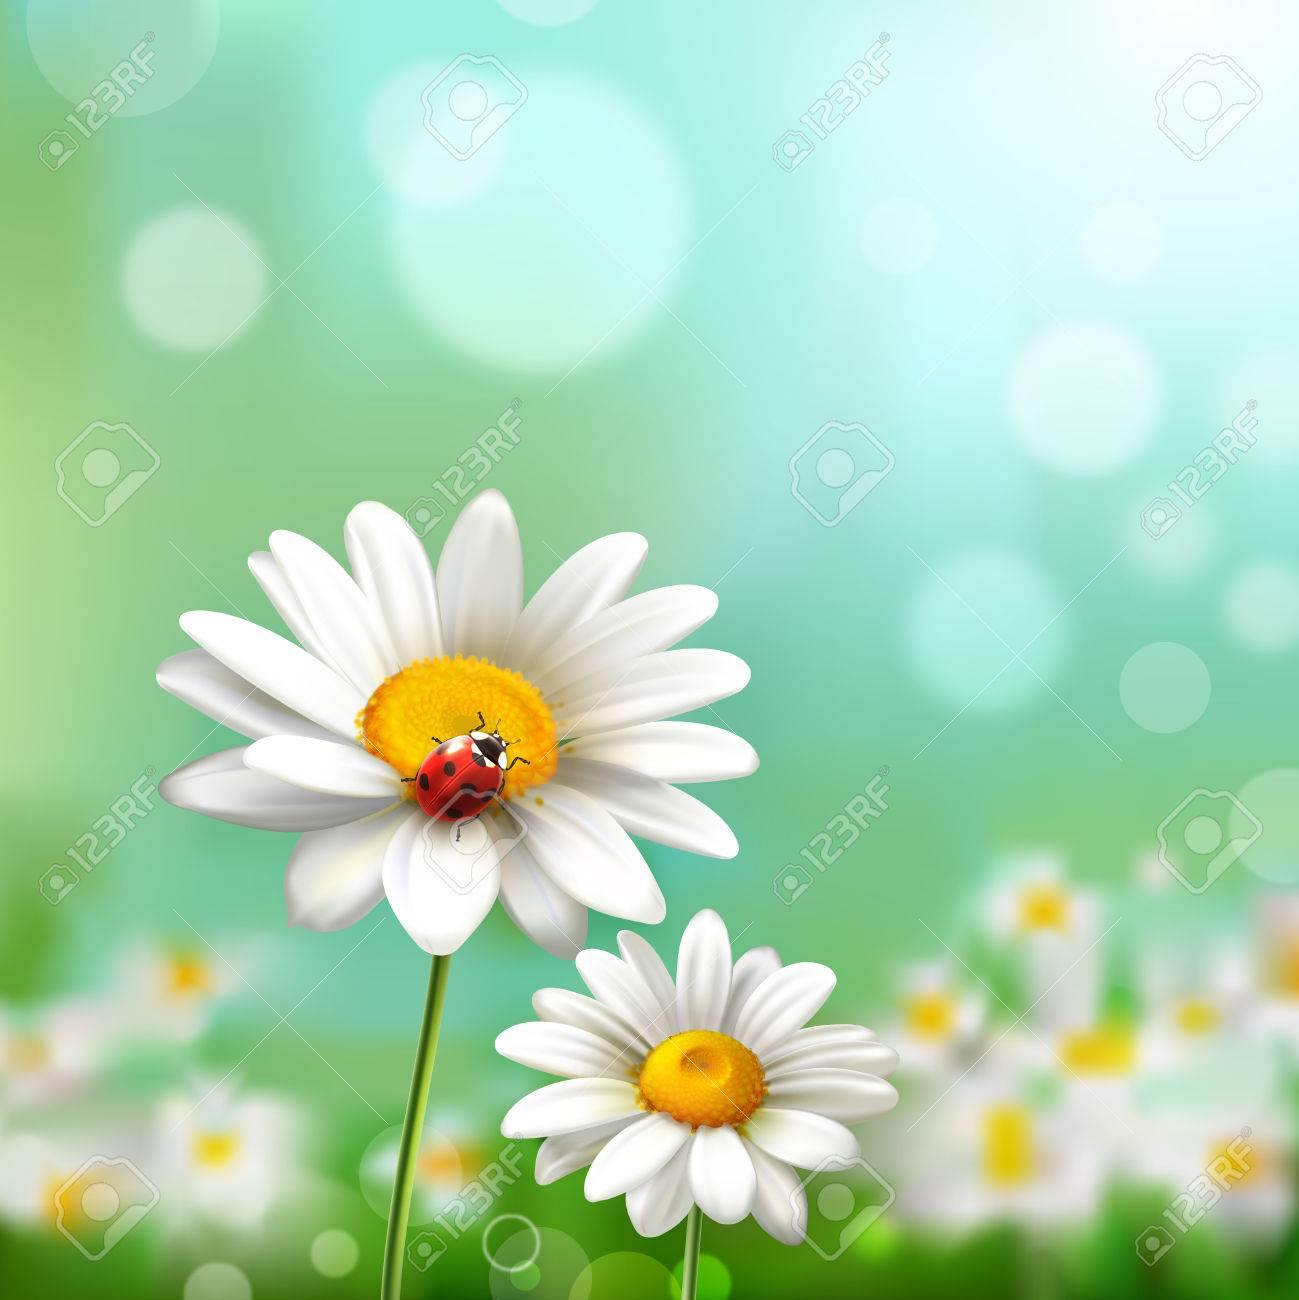 Summer meadow background with realistic daisy flower and ladybug vector illustration - 36519942